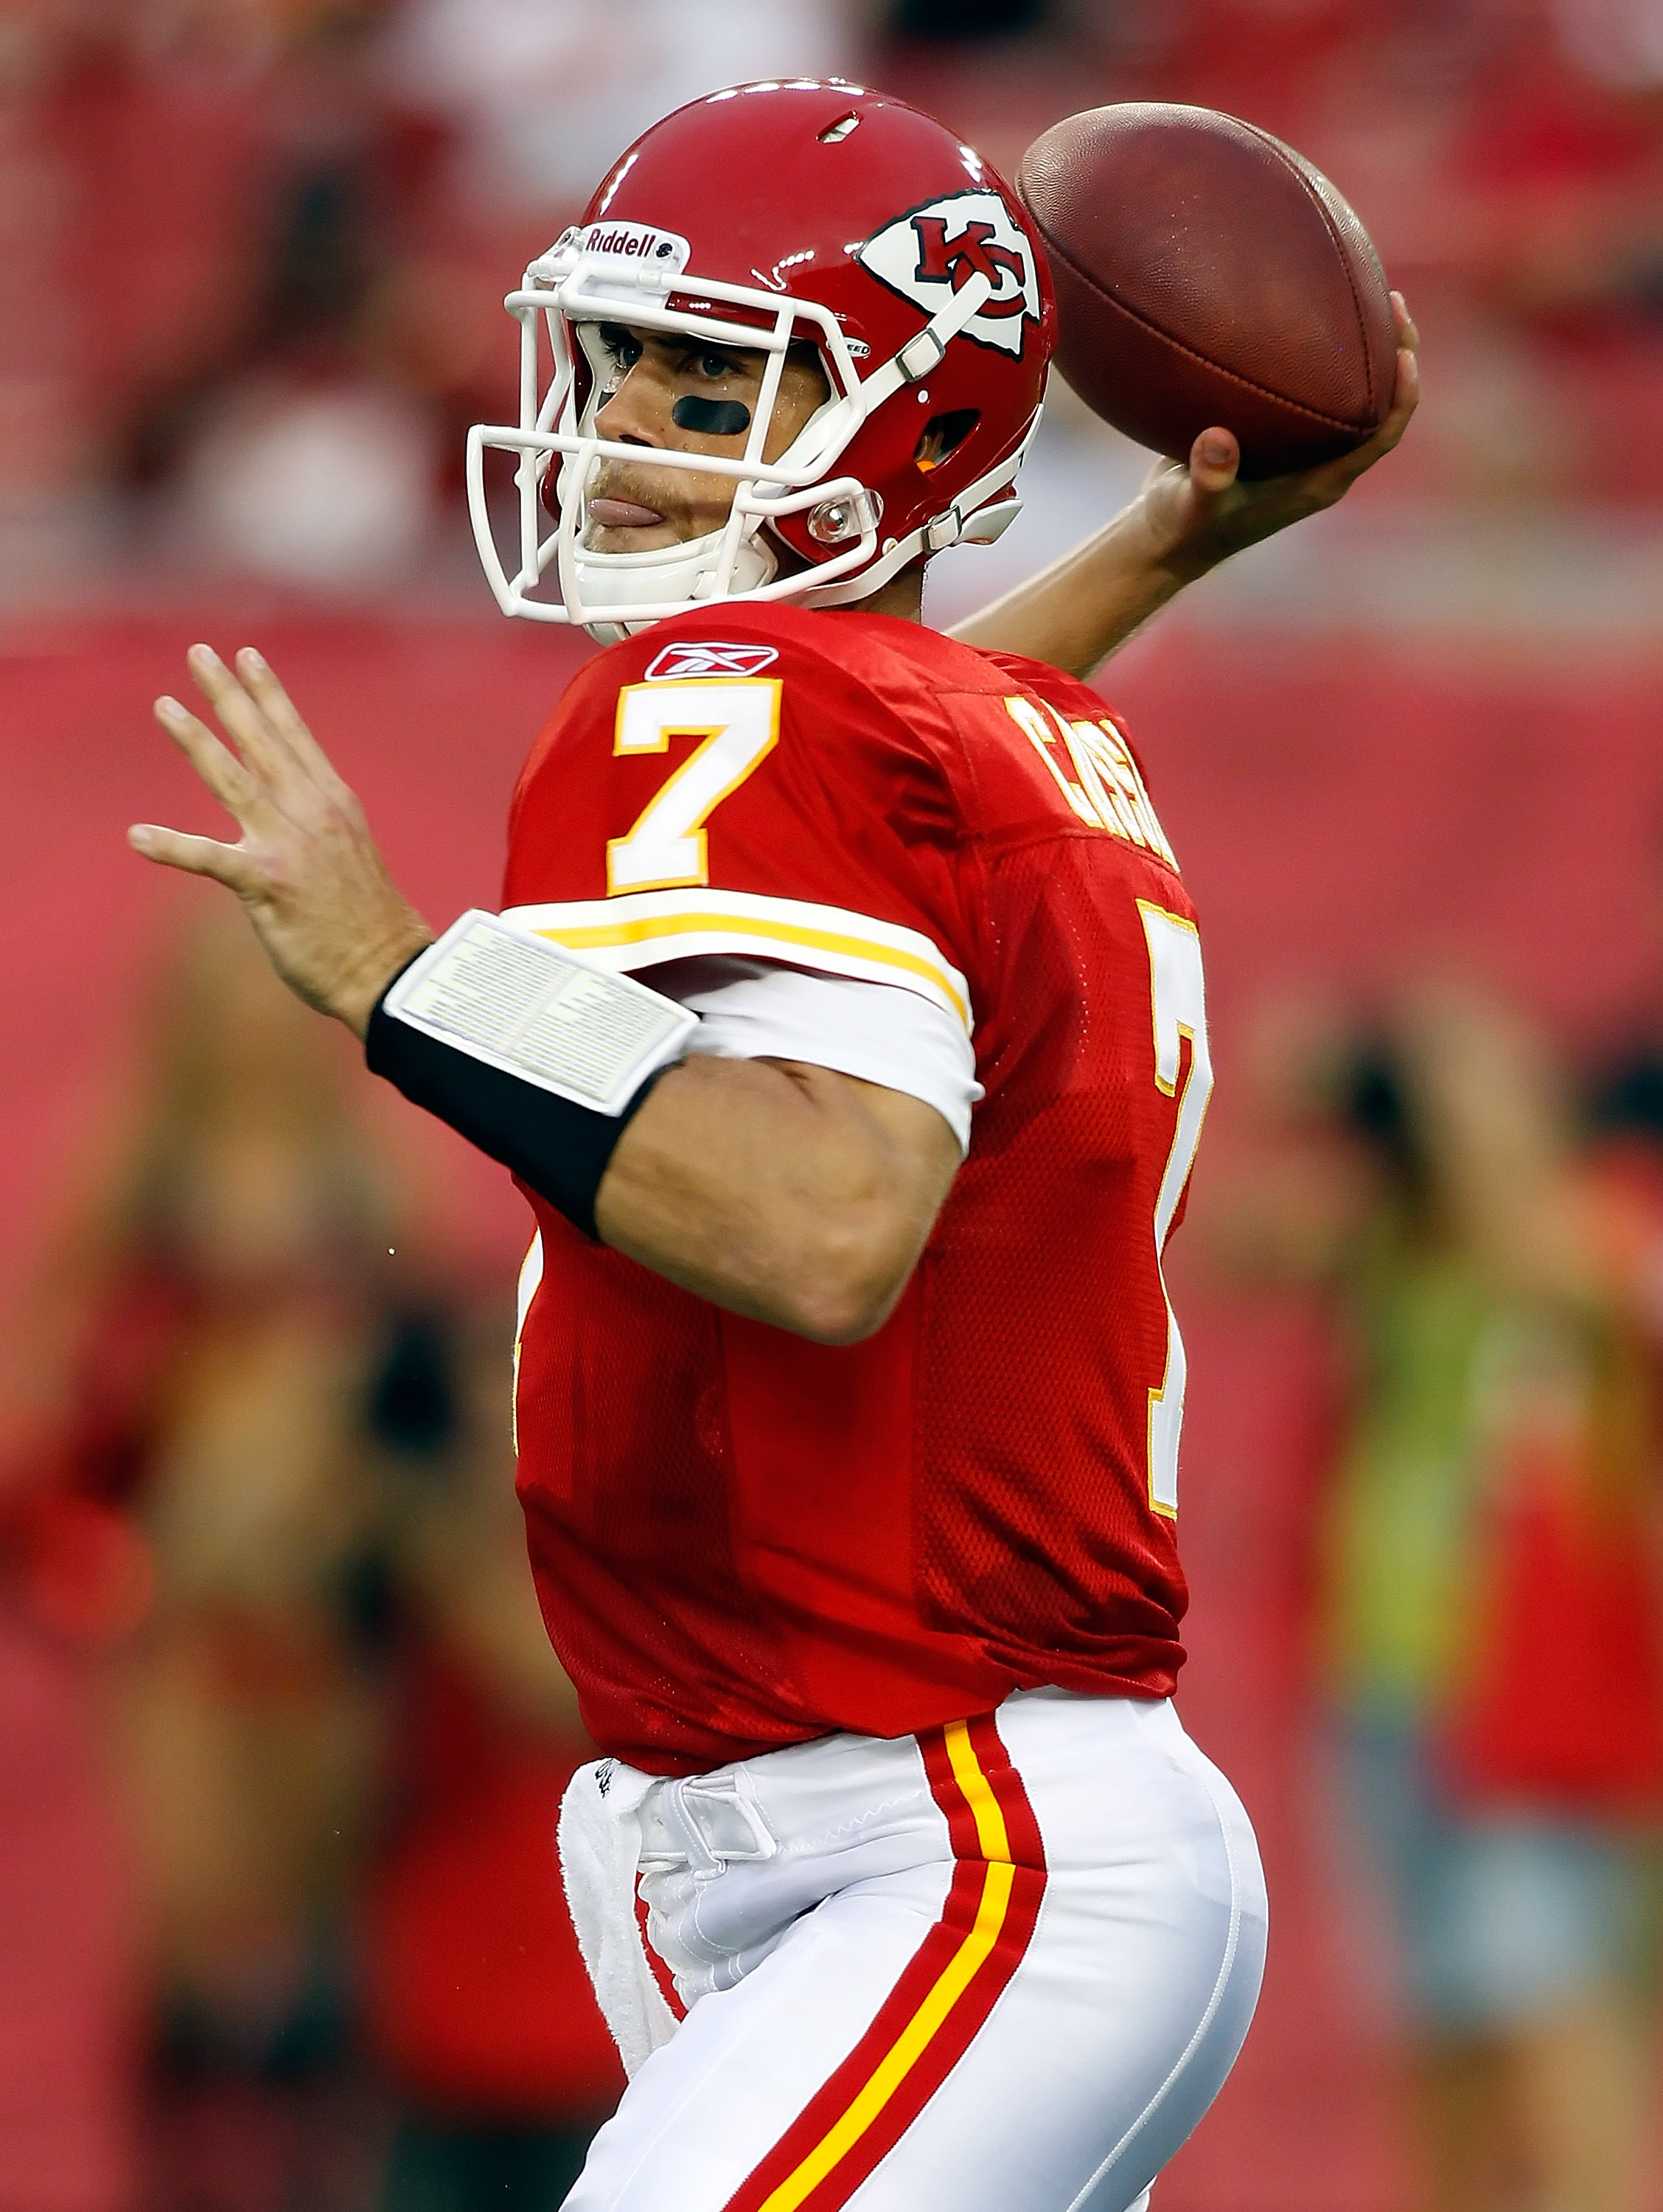 TAMPA, FL - AUGUST 21:  Quarterback Matt Cassel #7 of the Kansas City Chiefs throws a pass against the Tampa Bay Buccaneers during a preseason game at Raymond James Stadium on August 21, 2010 in Tampa, Florida.  (Photo by J. Meric/Getty Images)